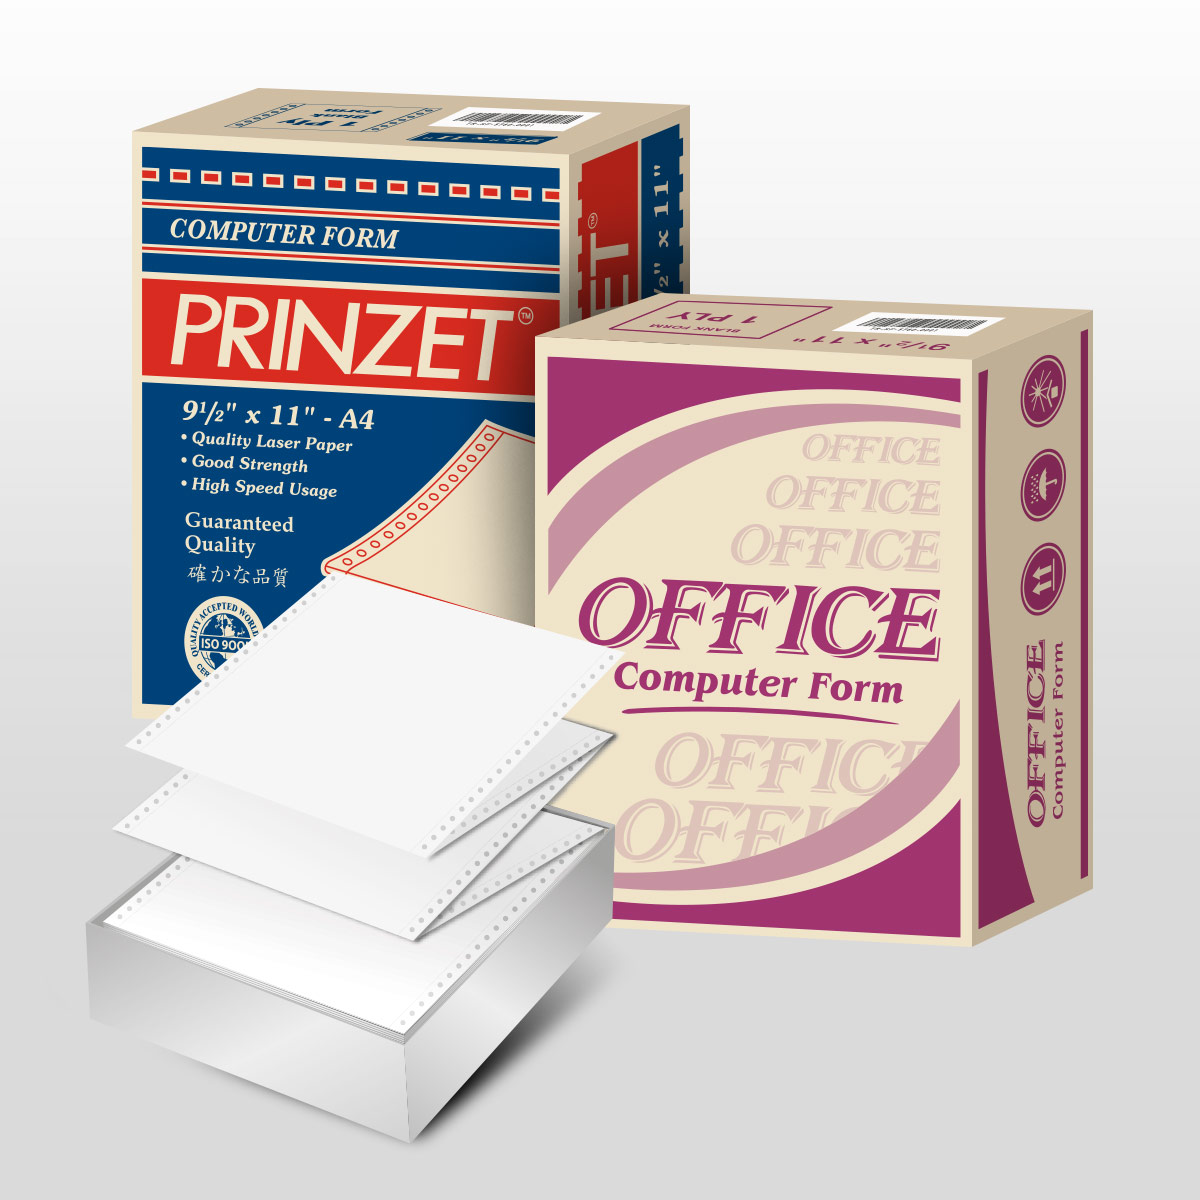 Prinzet and Office Computer Form